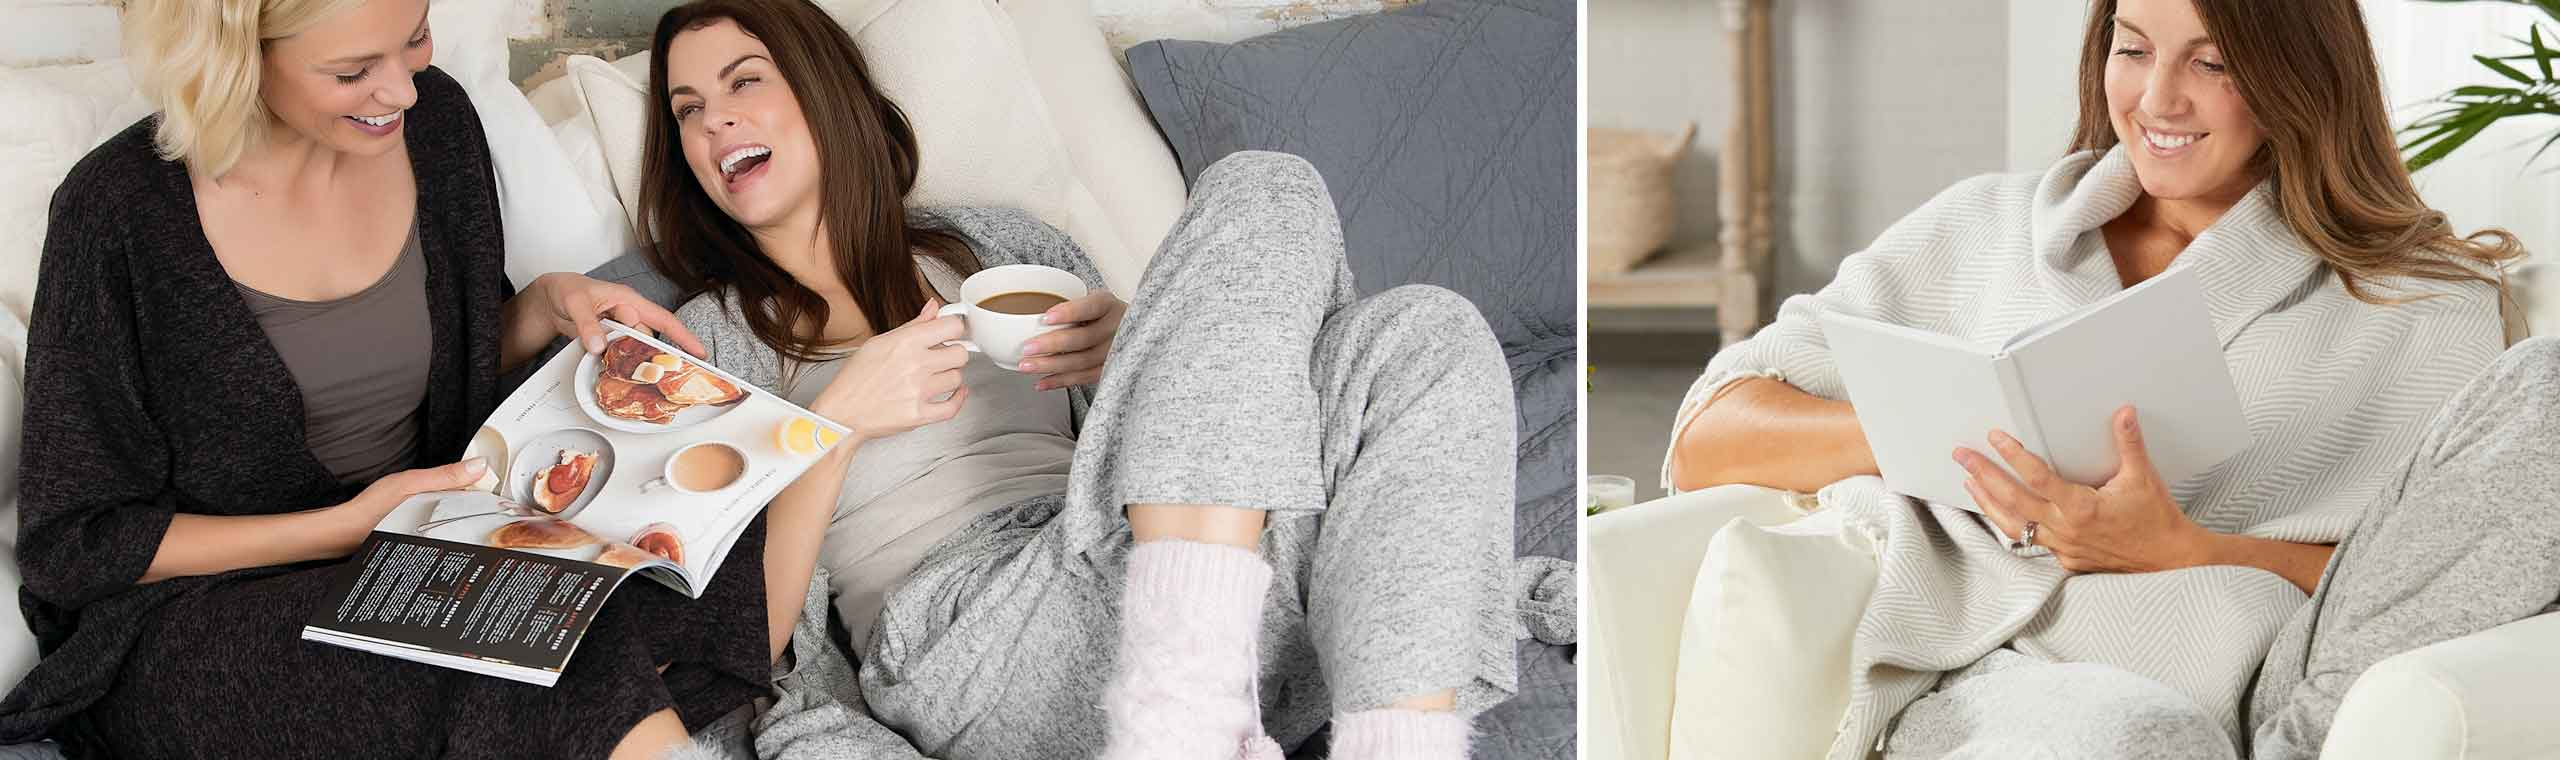 Be kind to you. Two girls drinking coffee on a couch laughing and reading a magazine together. Soft, silky pink pillow and eye mask.